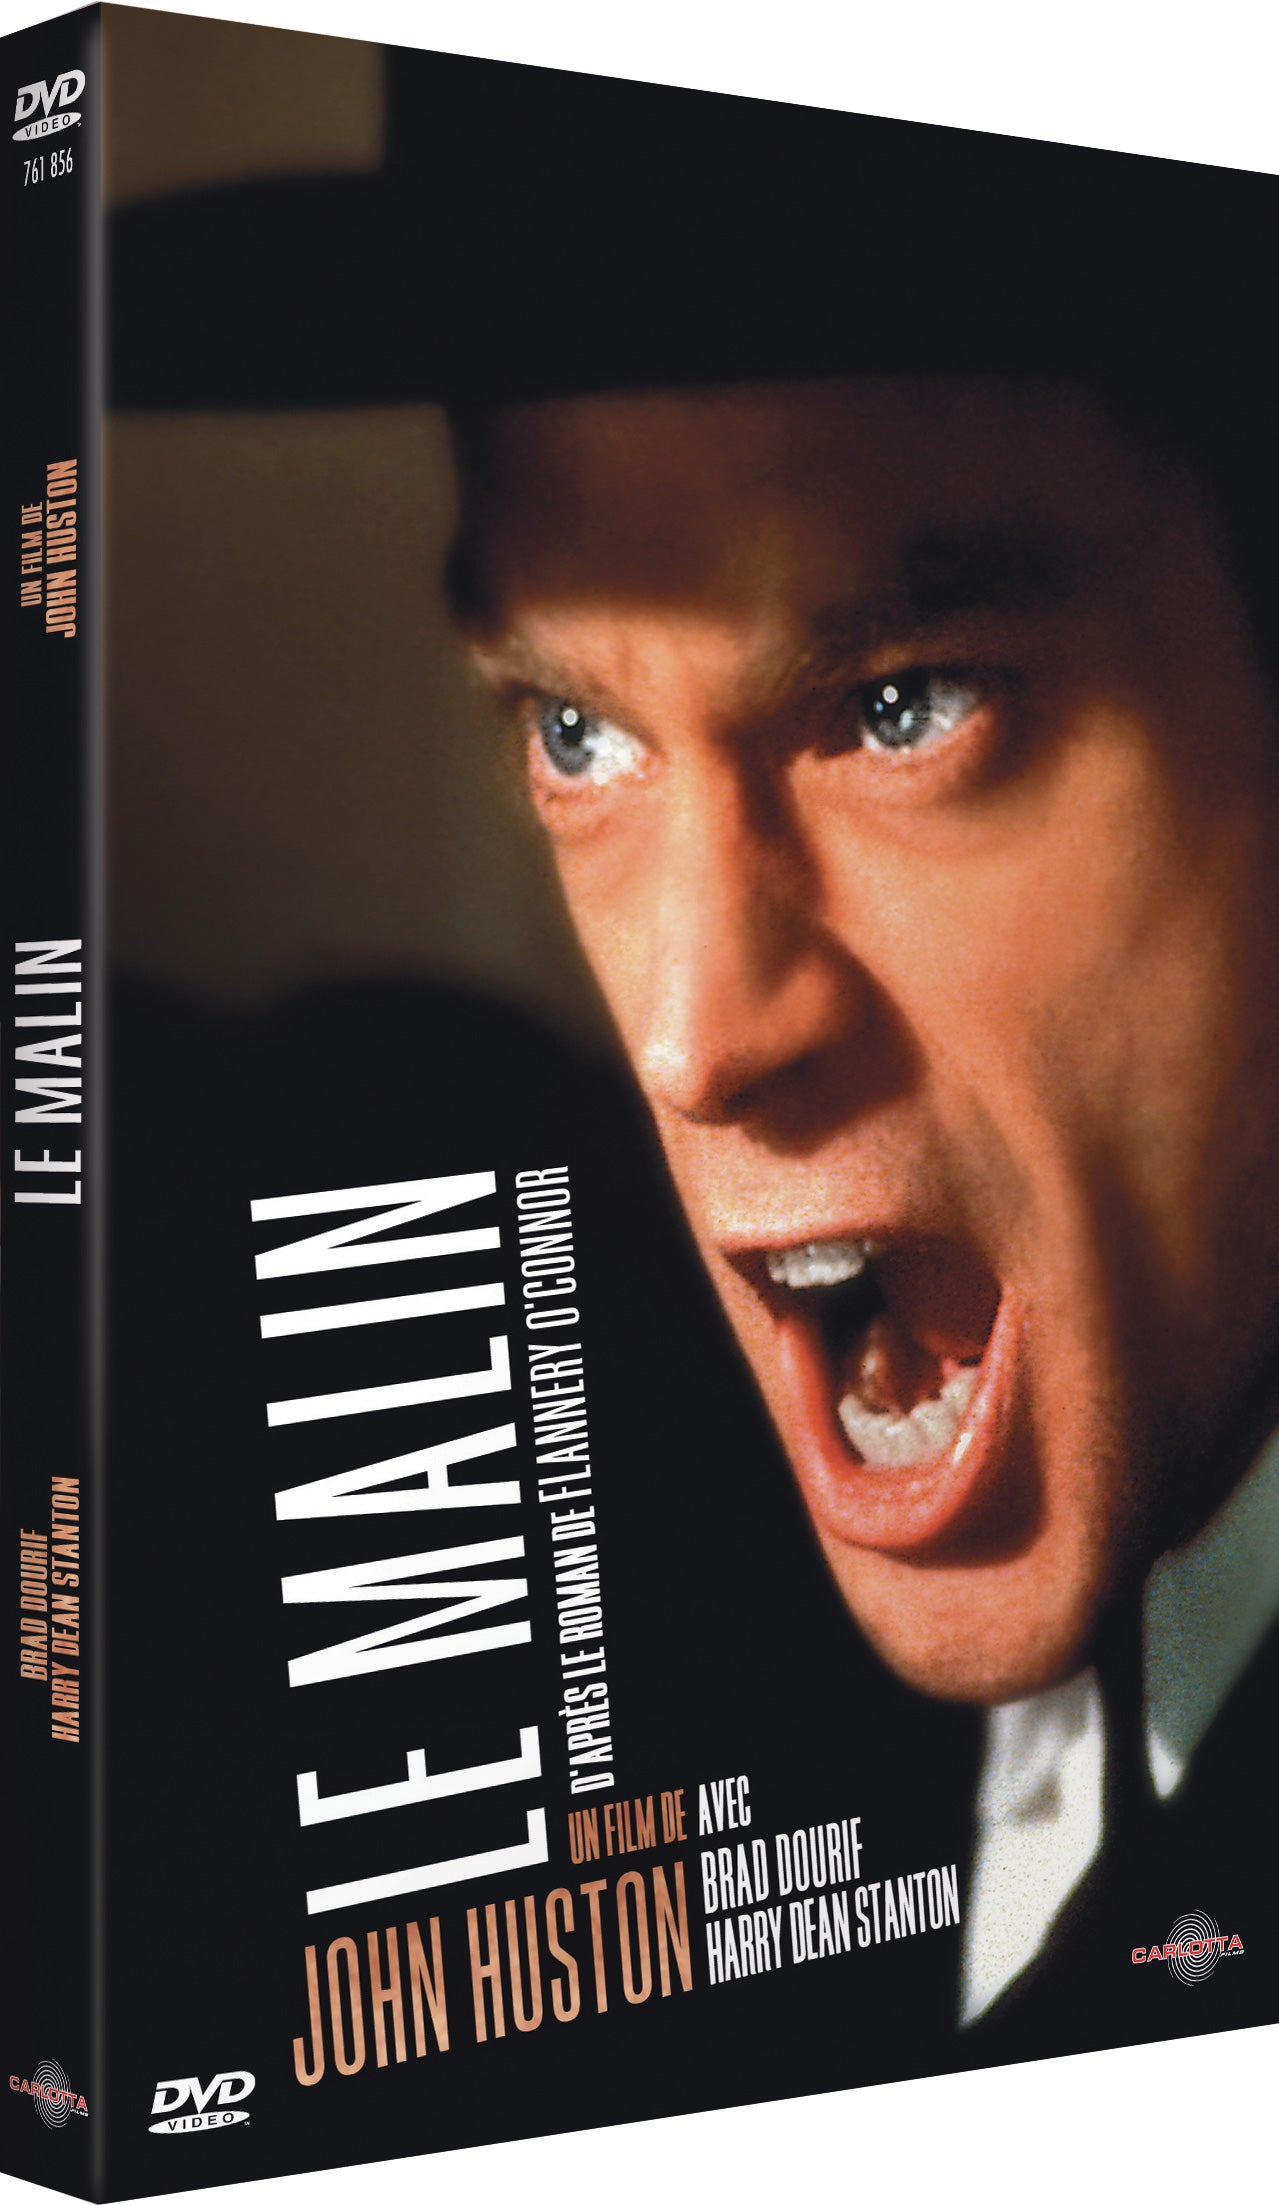 Le Malin de John Huston - DVD